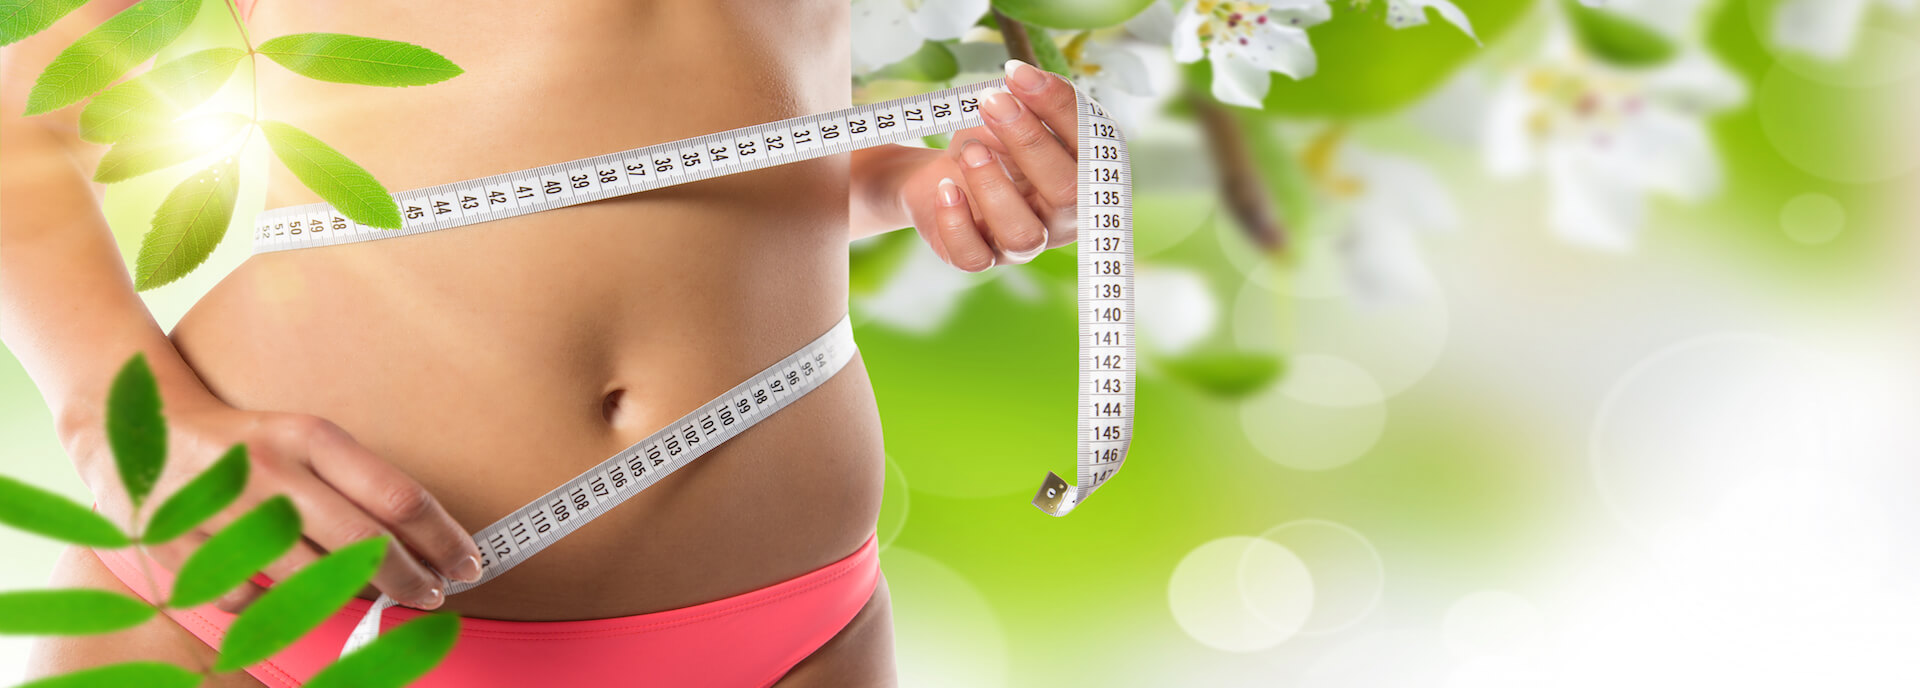 wholistic weight loss